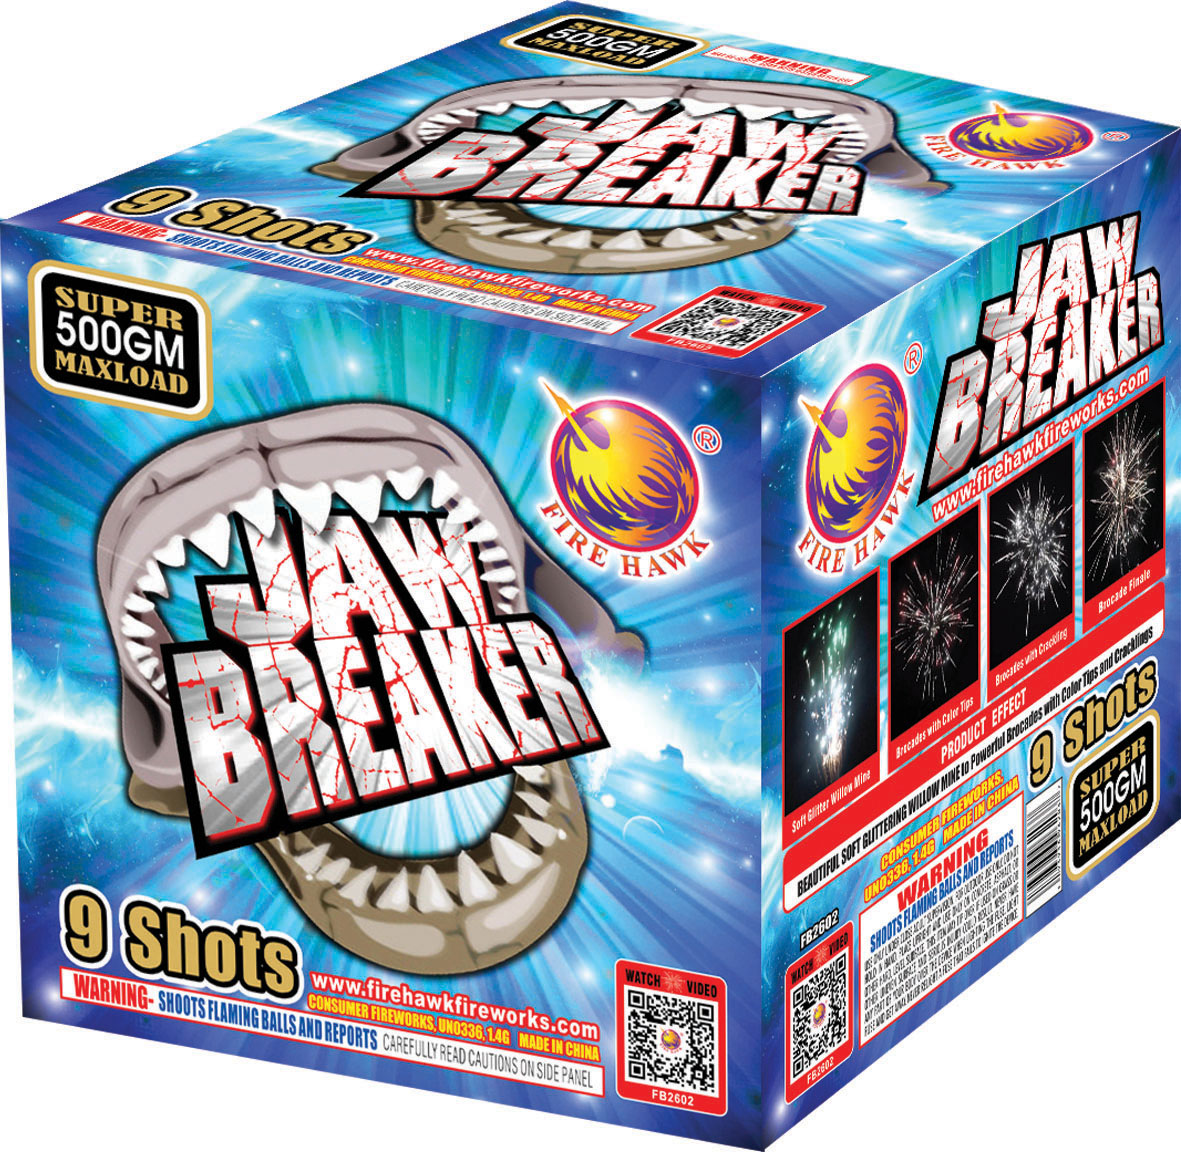 FB2602 Jaw Breaker